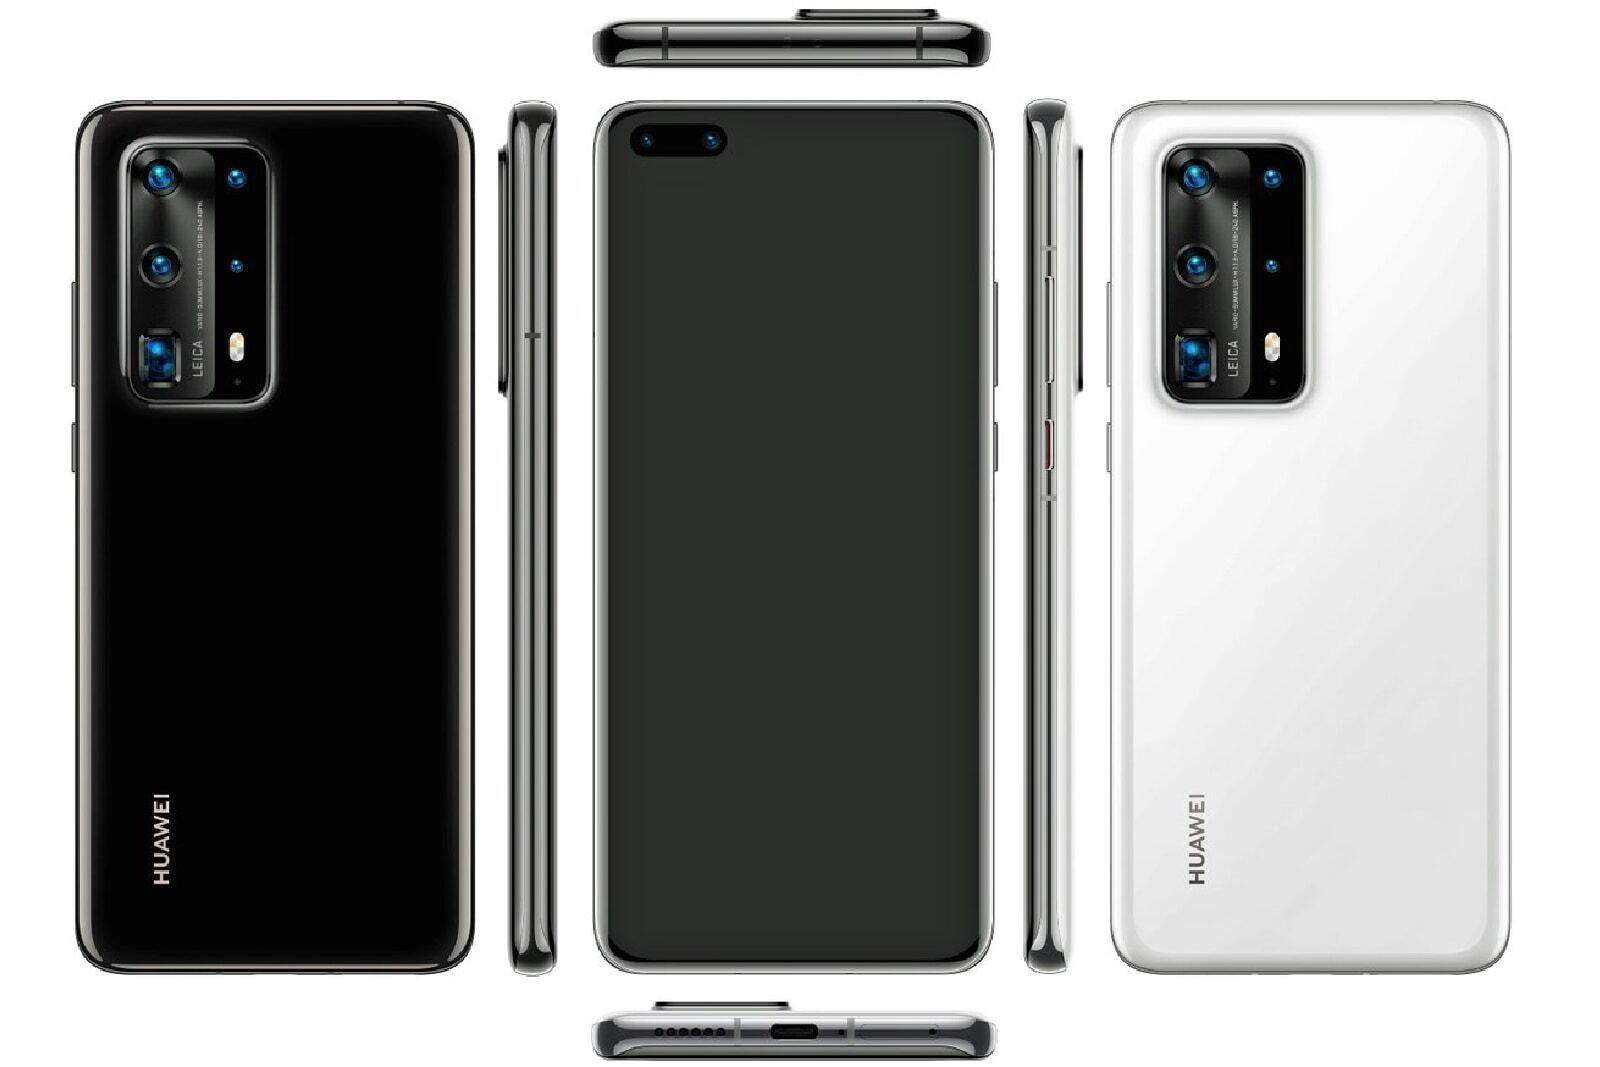 5G is all but confirmed for the Huawei P40 and P40 Pro